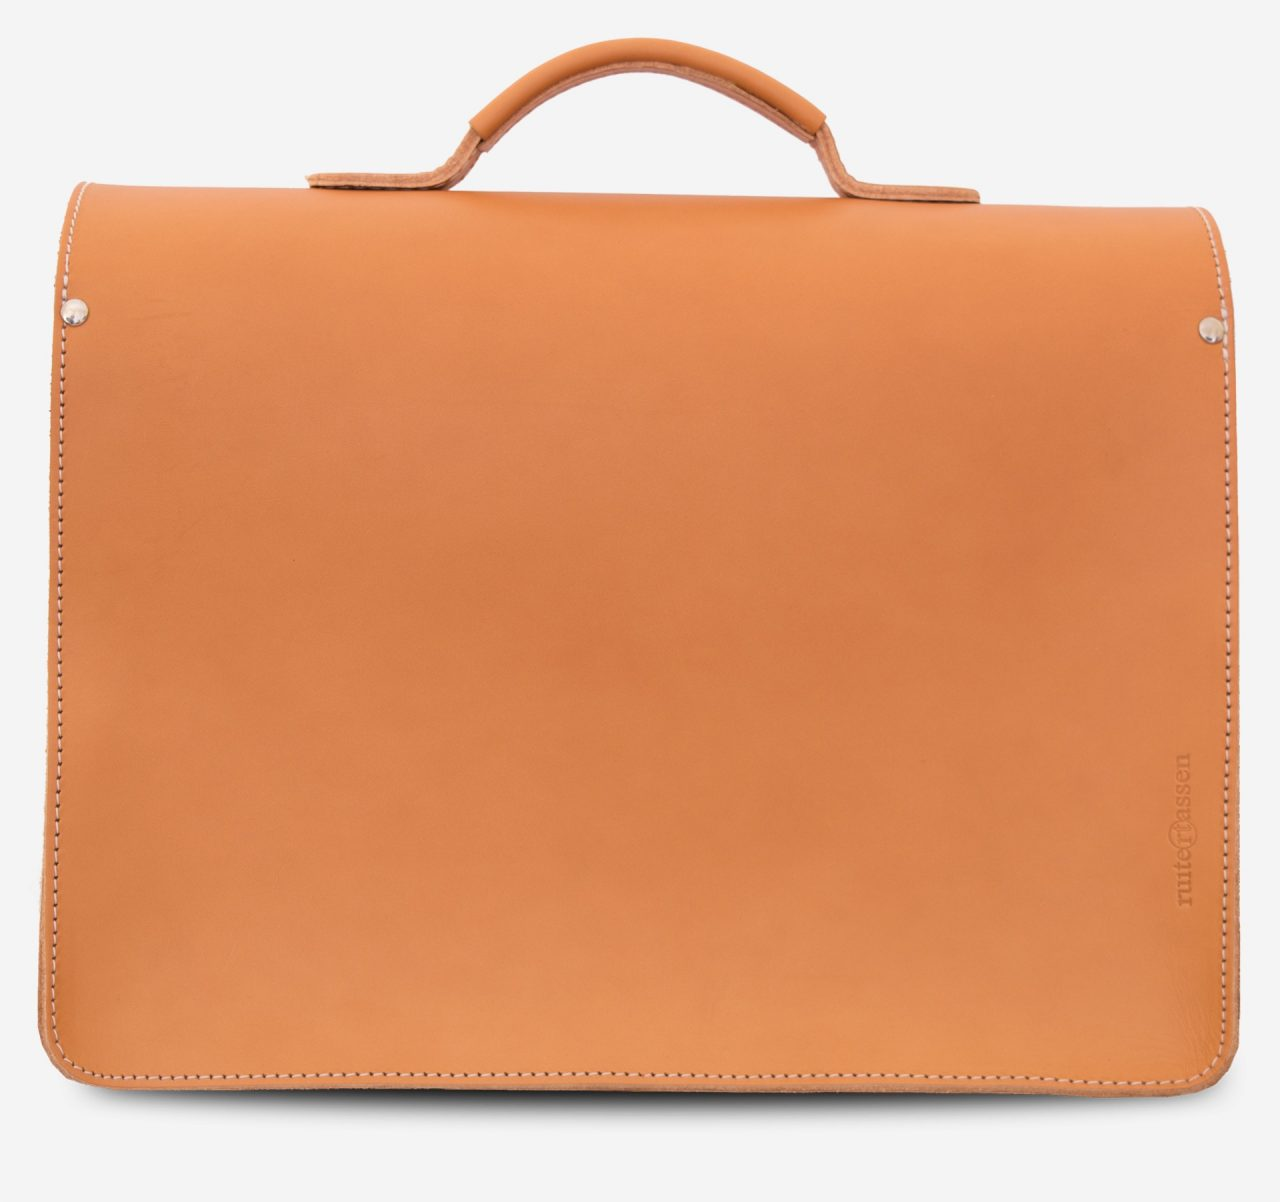 Back view of the Professor tan leather satchel with Ruitertassen logo.